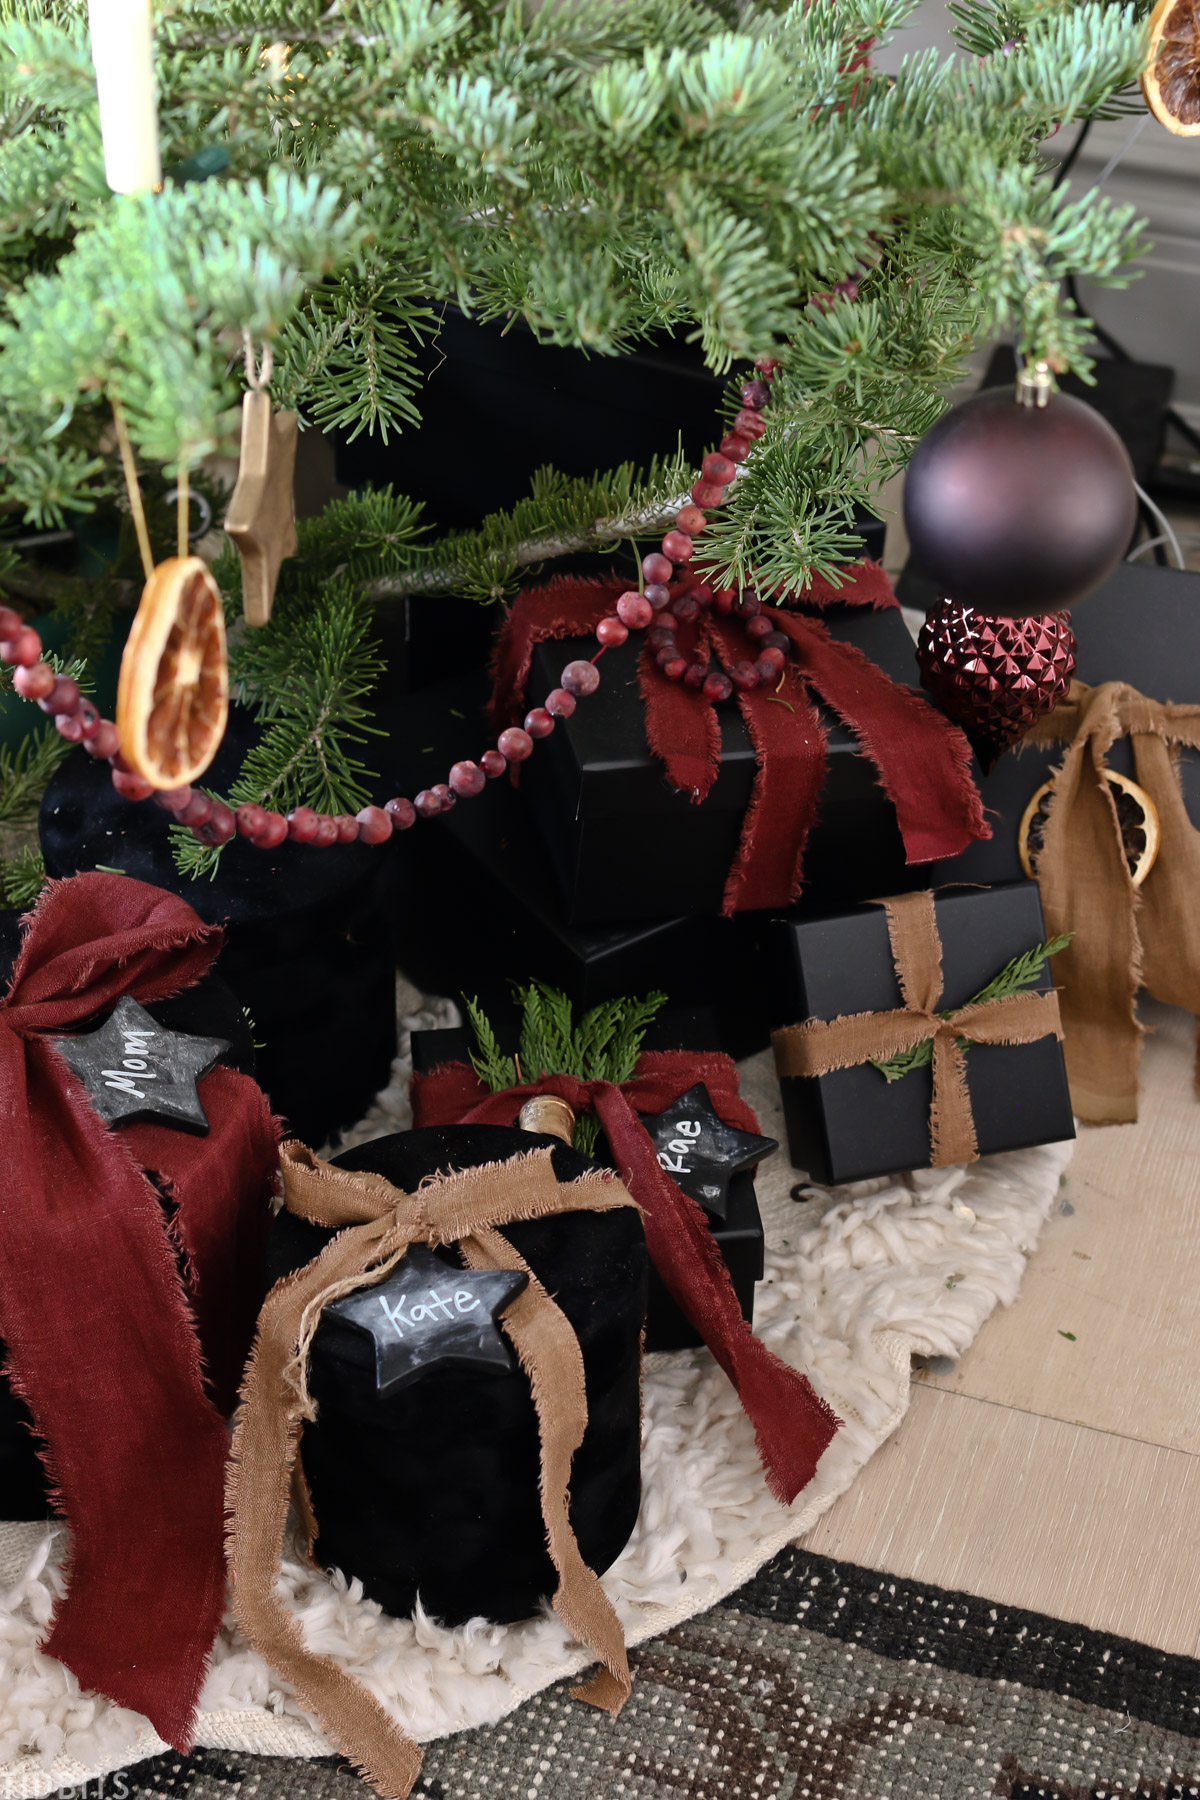 presents placed underneath Christmas tree